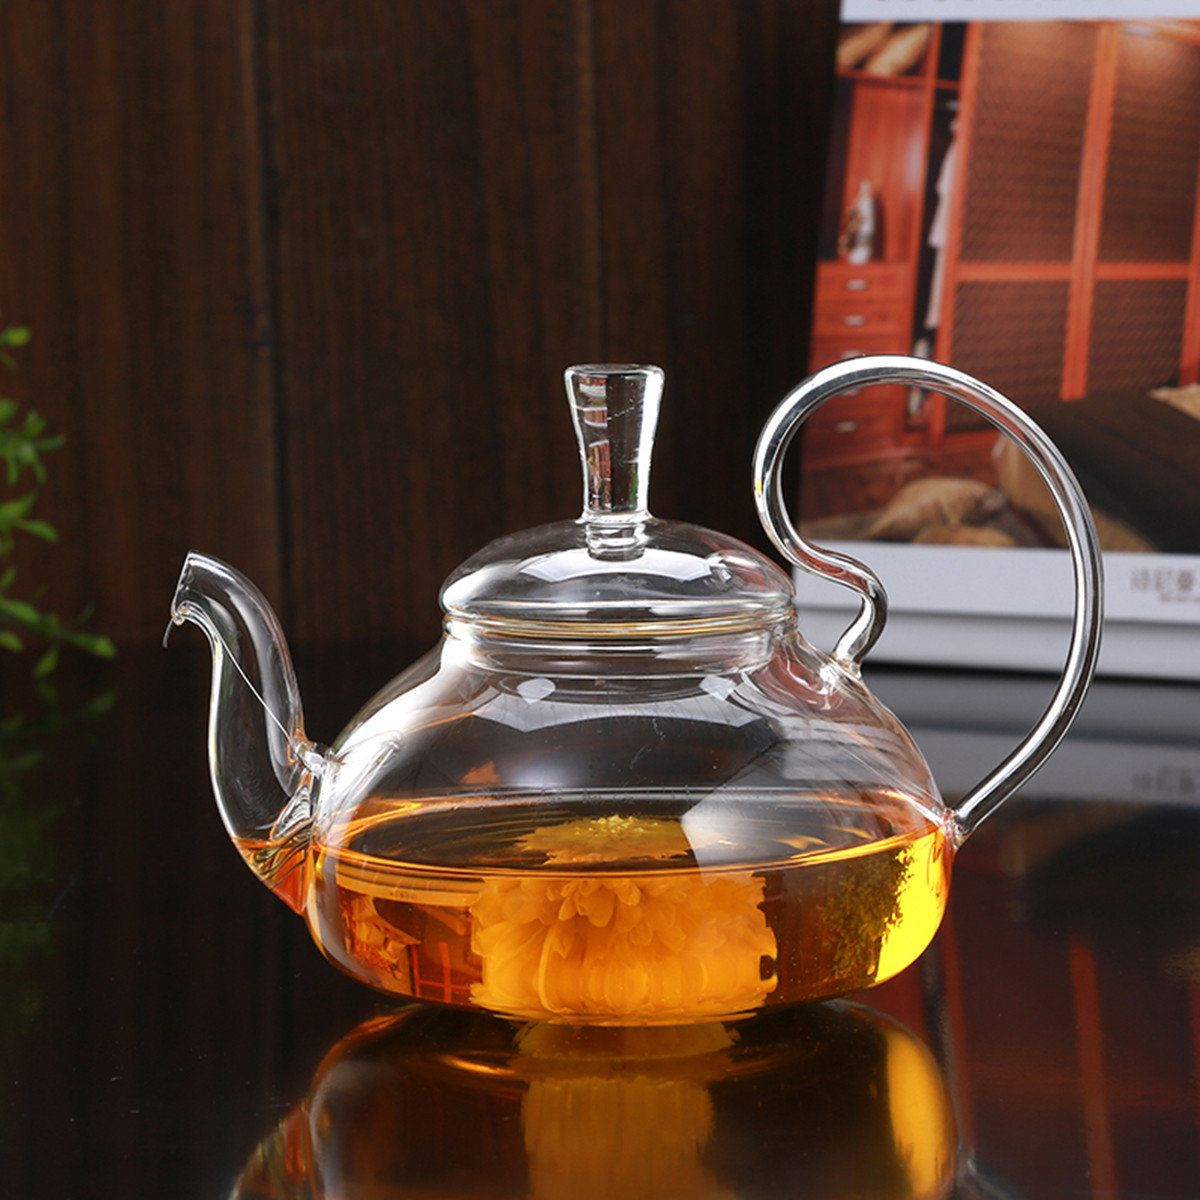 Heat Resistant Elegant Glass Teapot Infuser Flower Green Tea Pot 750ml Size Coffee Pot Bar Accessory Tea Pots Glass Teapot Tea Kettle